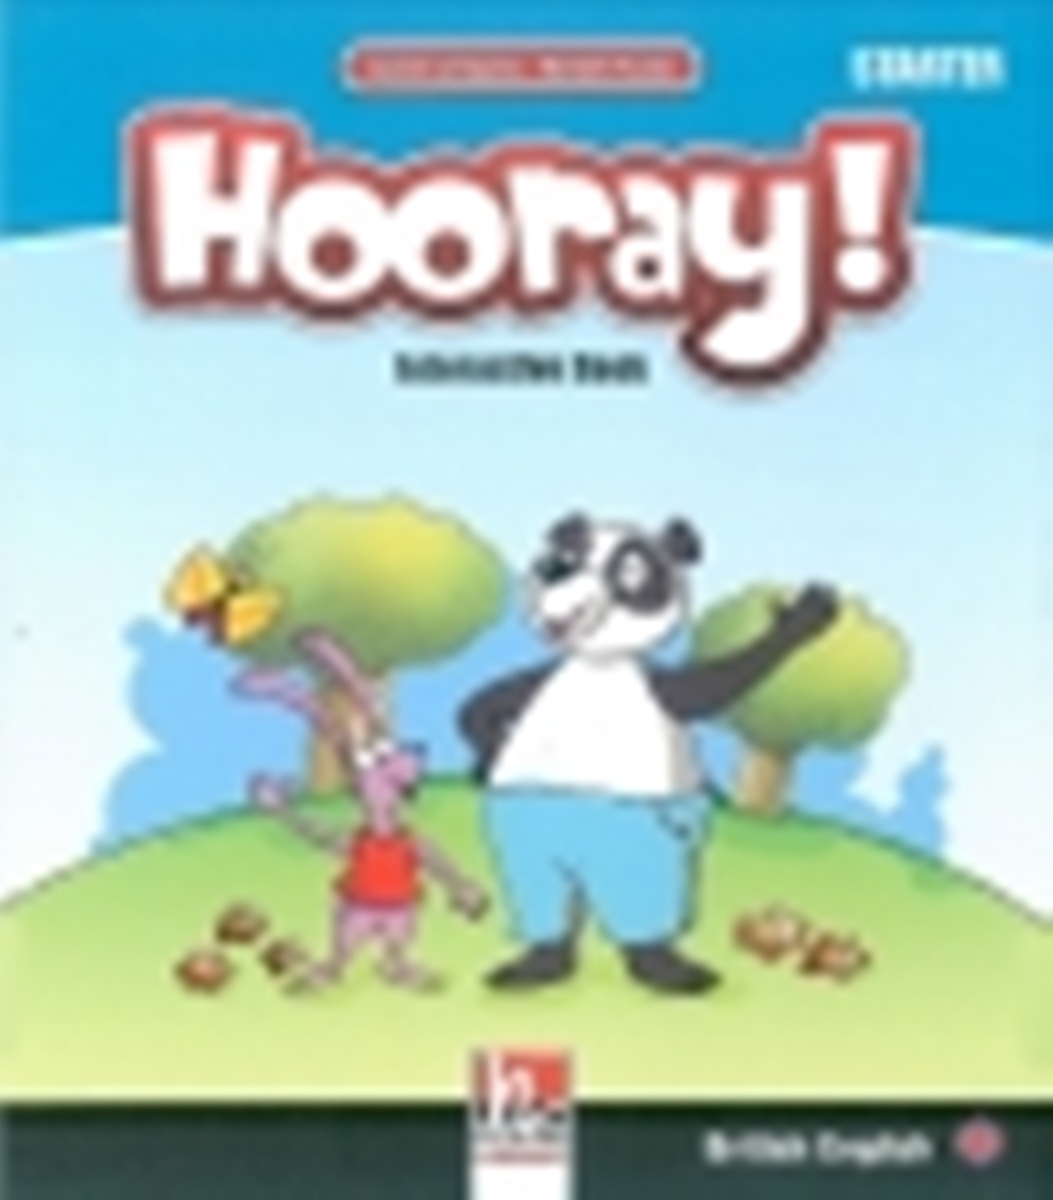 Hooray! Let's Play! - Starter Interactive Whiteboards Software stories for 3 year olds